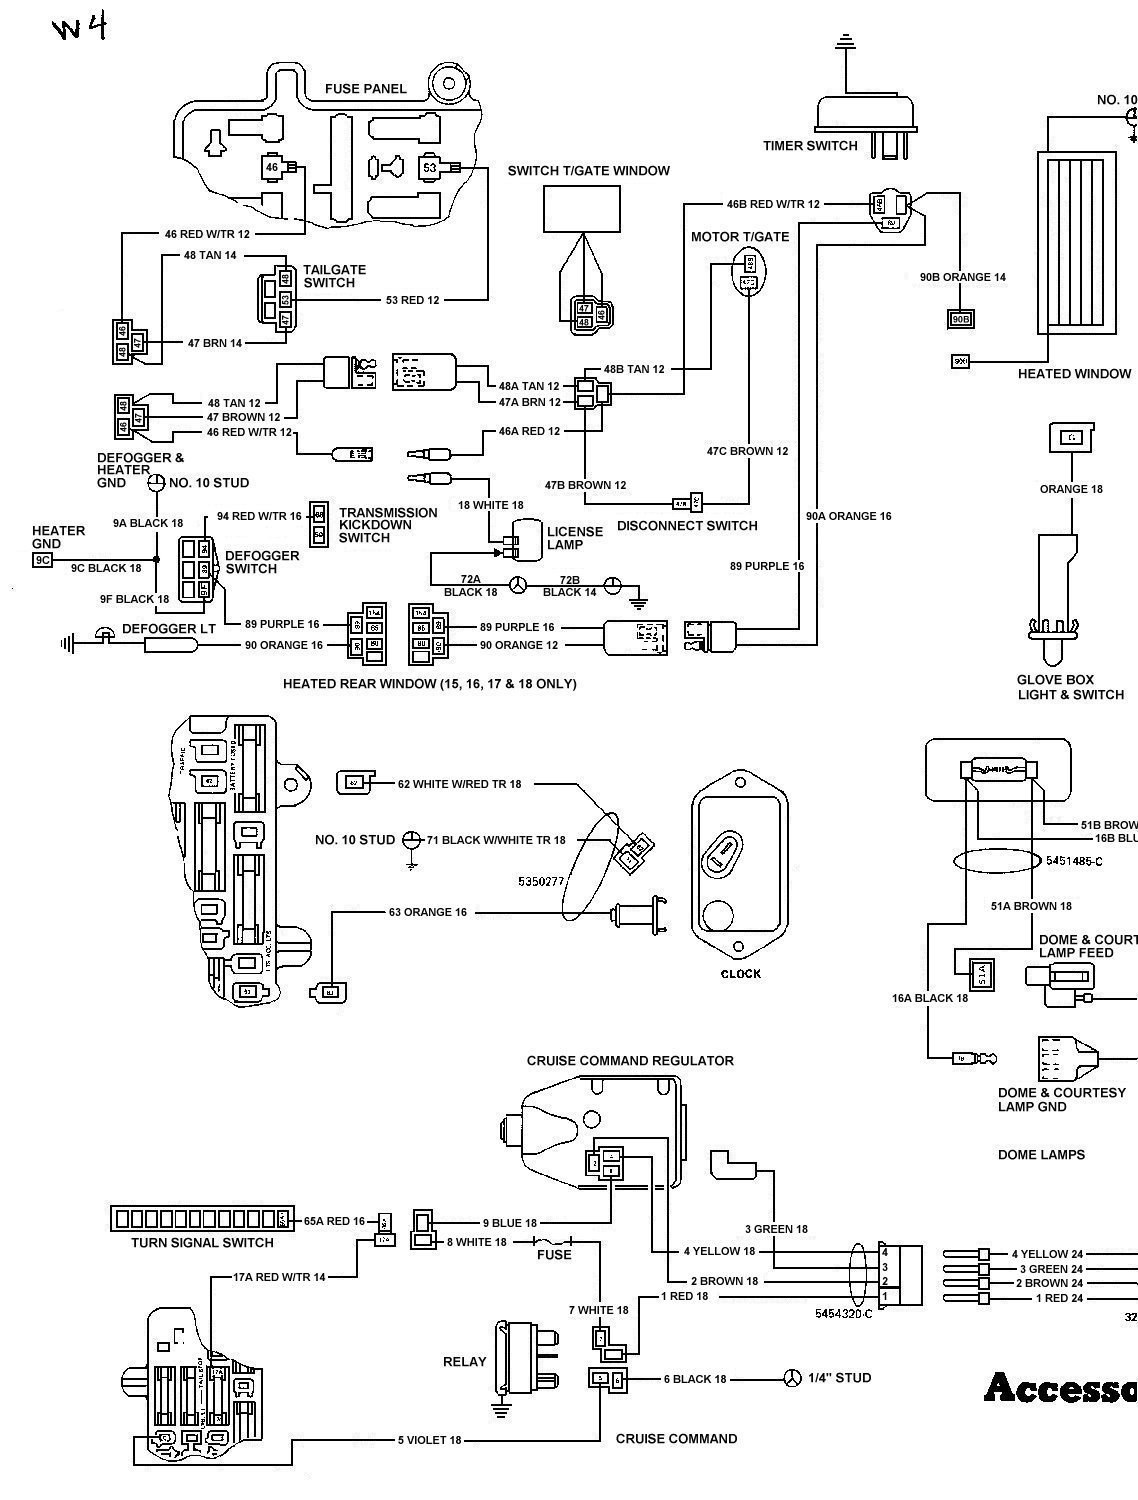 1976 cj7 wiring diagram 1976 jeep cj7 ignition wiring | wiring library